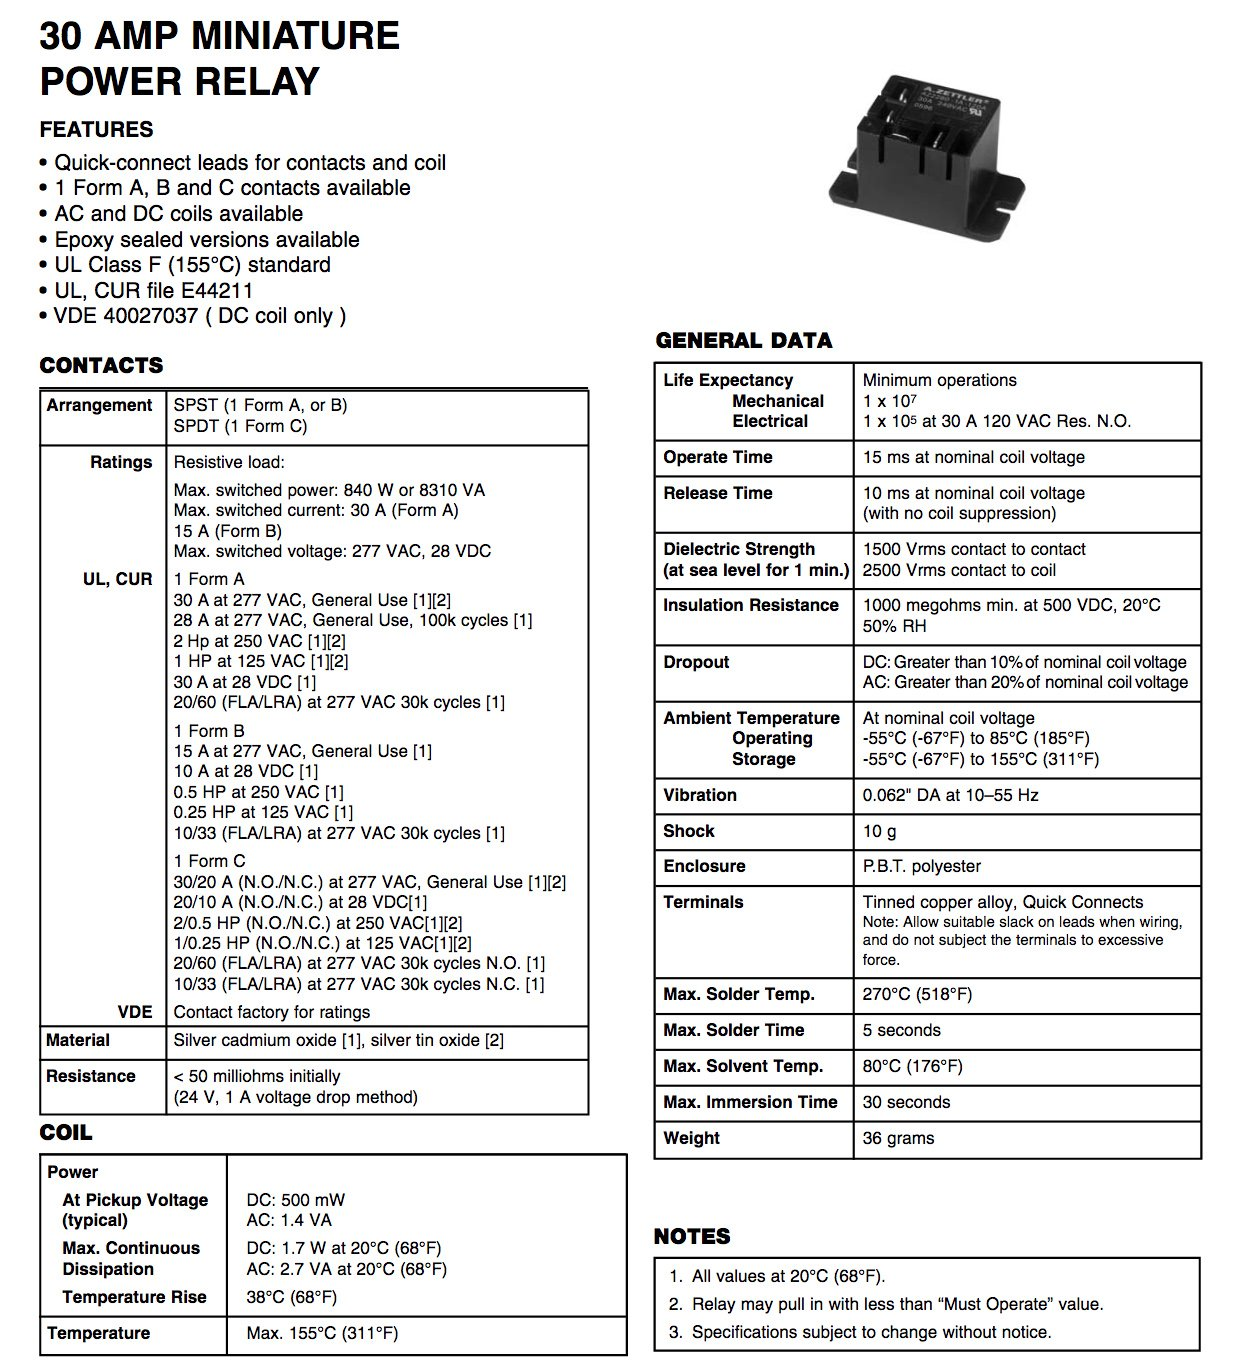 American Zettler Power Relay For Atwood 93849 Water Sense Circuit Heater Kit Rv Parts With Usb Cable Industrial Scientific